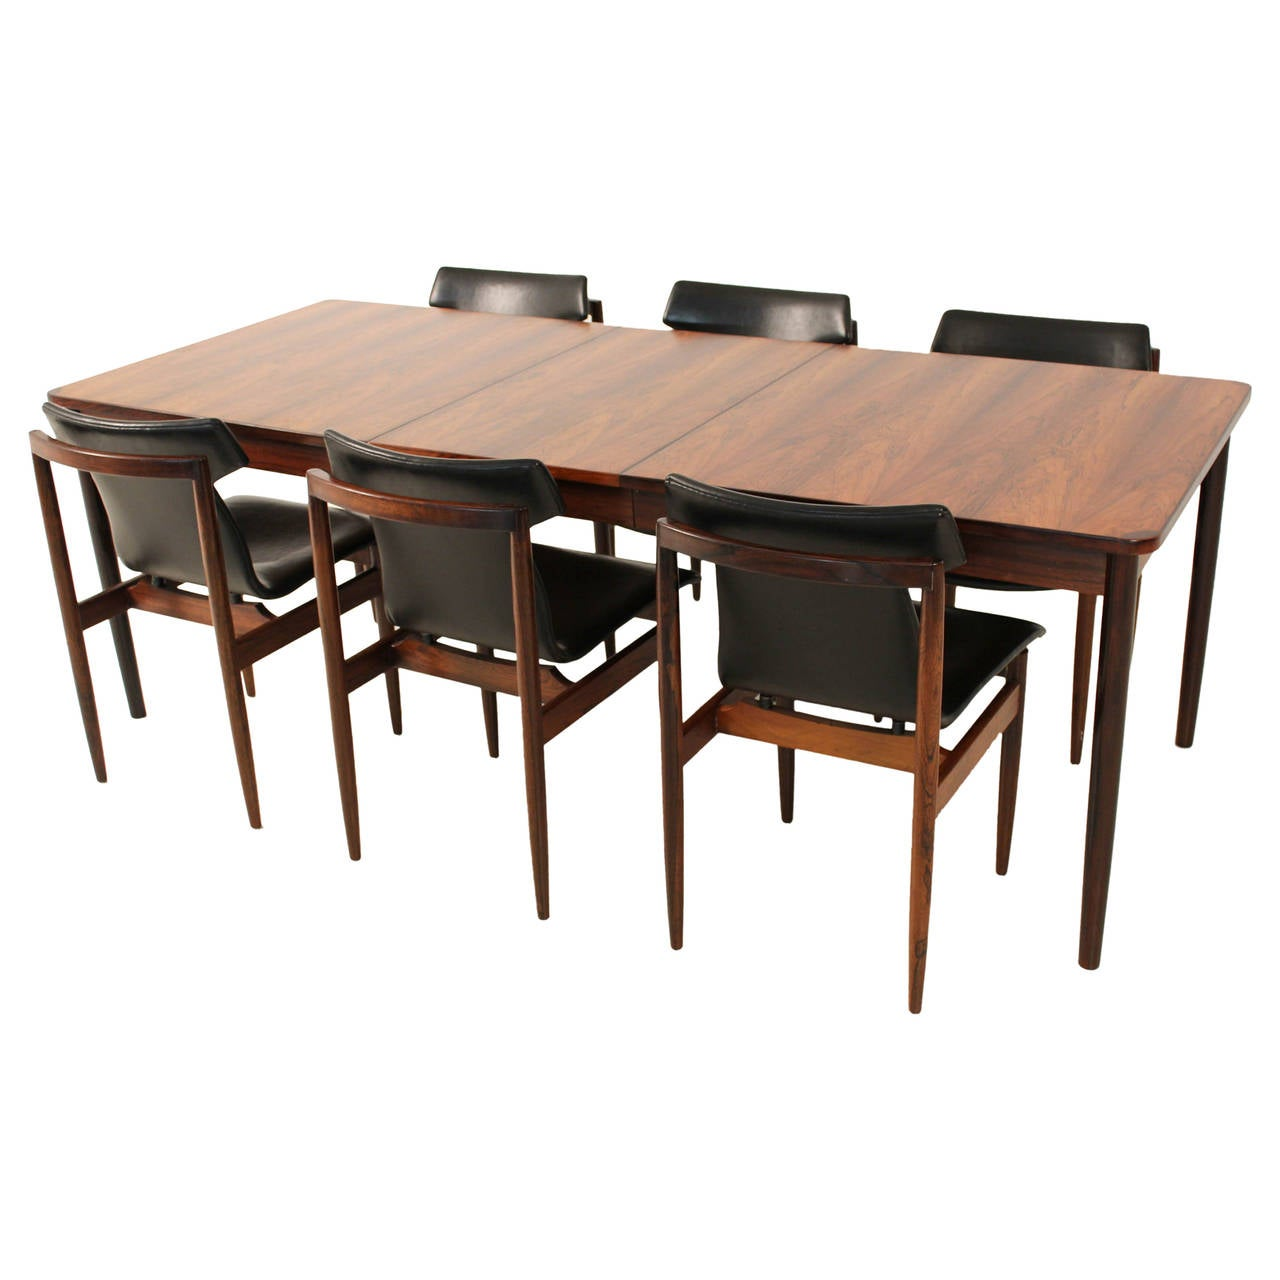 Mid century modern dining table by fristho at 1stdibs for Restaurant tables